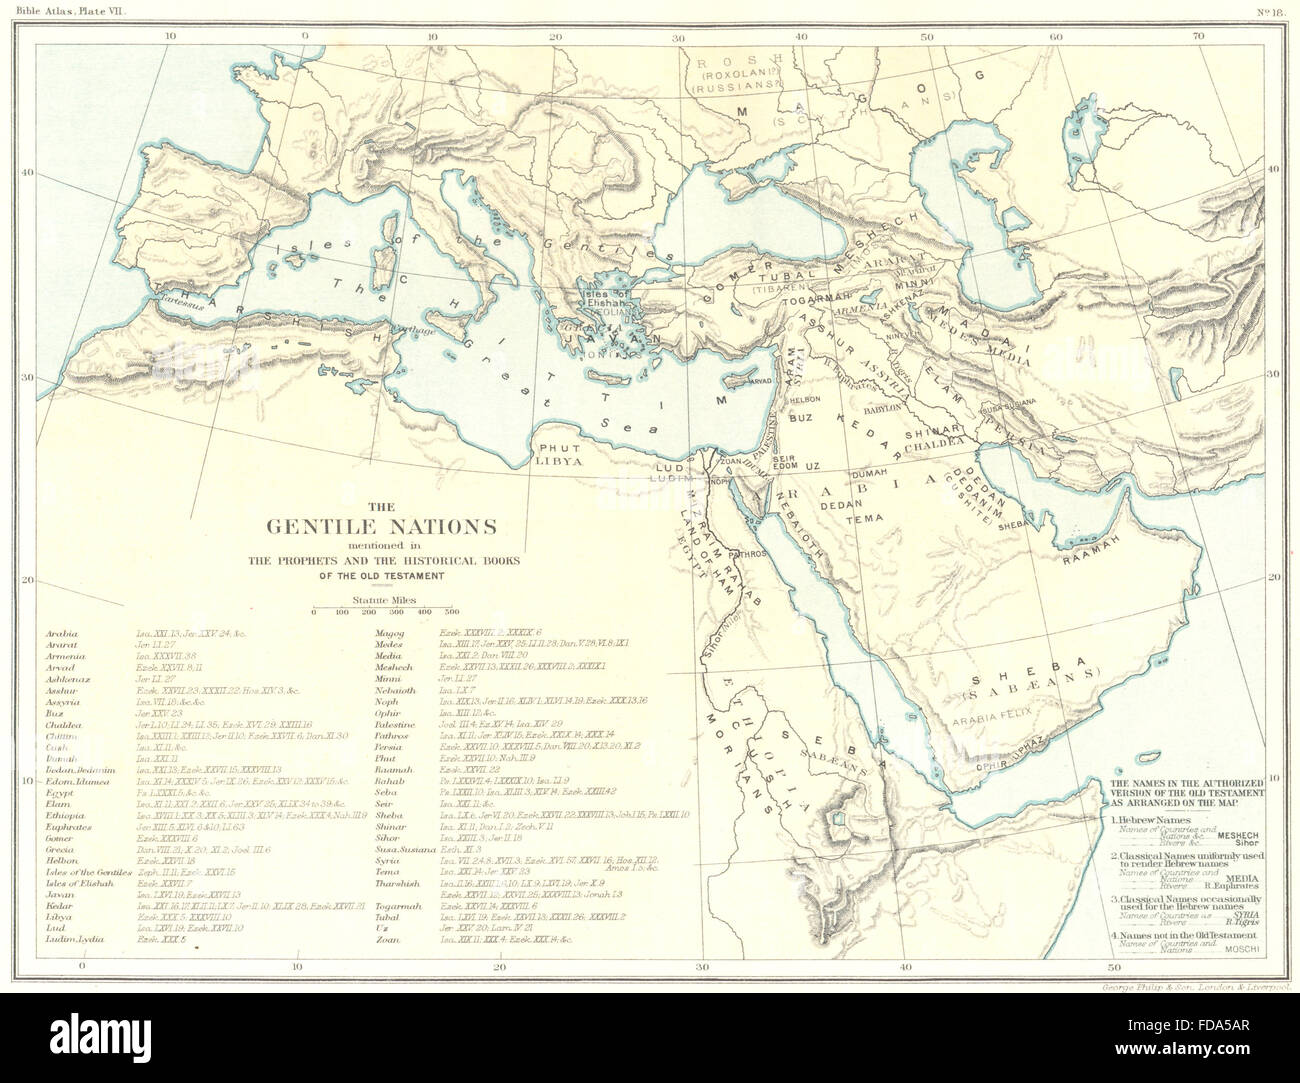 Historical books stock photos historical books stock images alamy gentile nations prophets historical books of old testament 1900 old map stock gumiabroncs Gallery